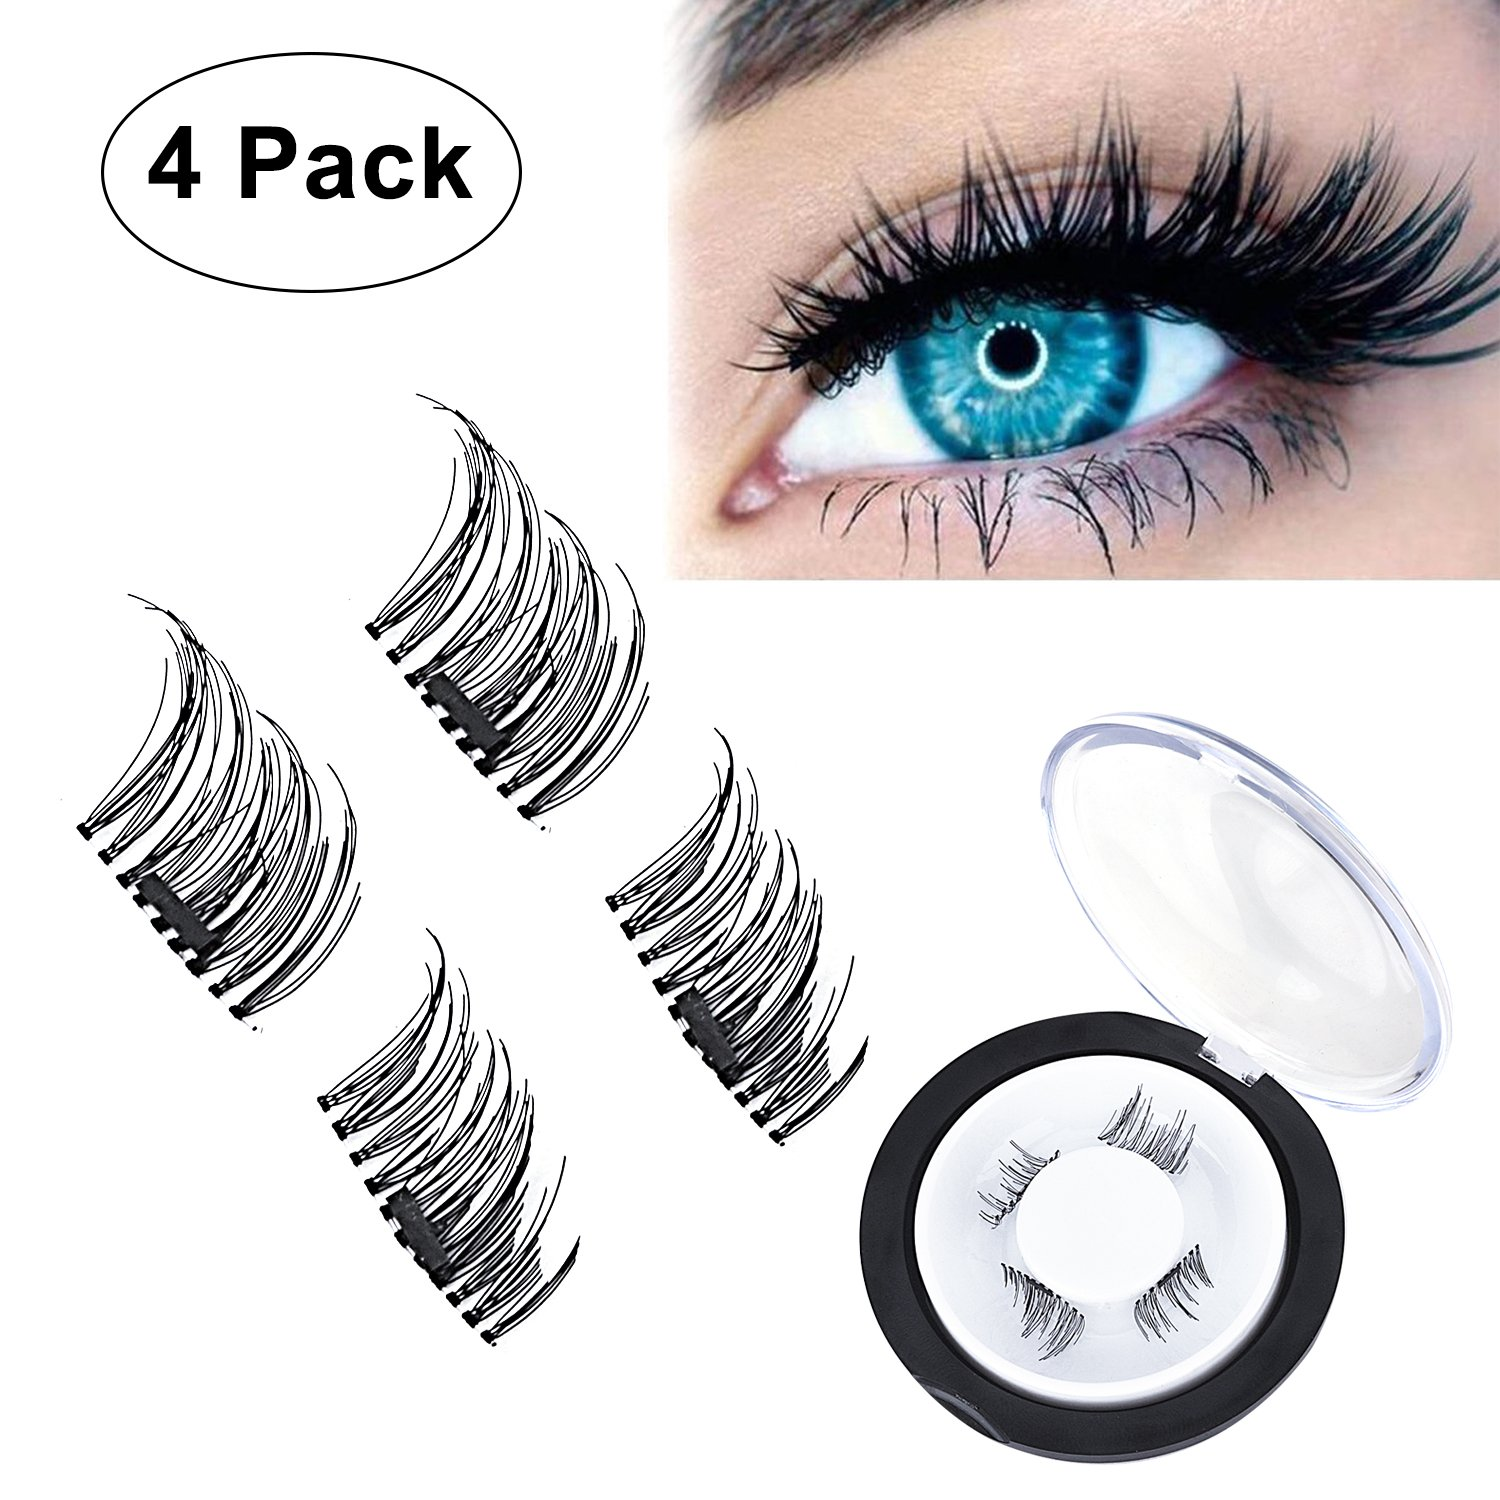 b004cd84c30 Magnetic False Eyelashes (1 Pair 4 Pieces) by WEBSUN, 0.2mm Ultra-thin 3D  Design Natural Dual Magnetic Fake Eyelashes Reusable No Glue: Amazon.co.uk:  Beauty